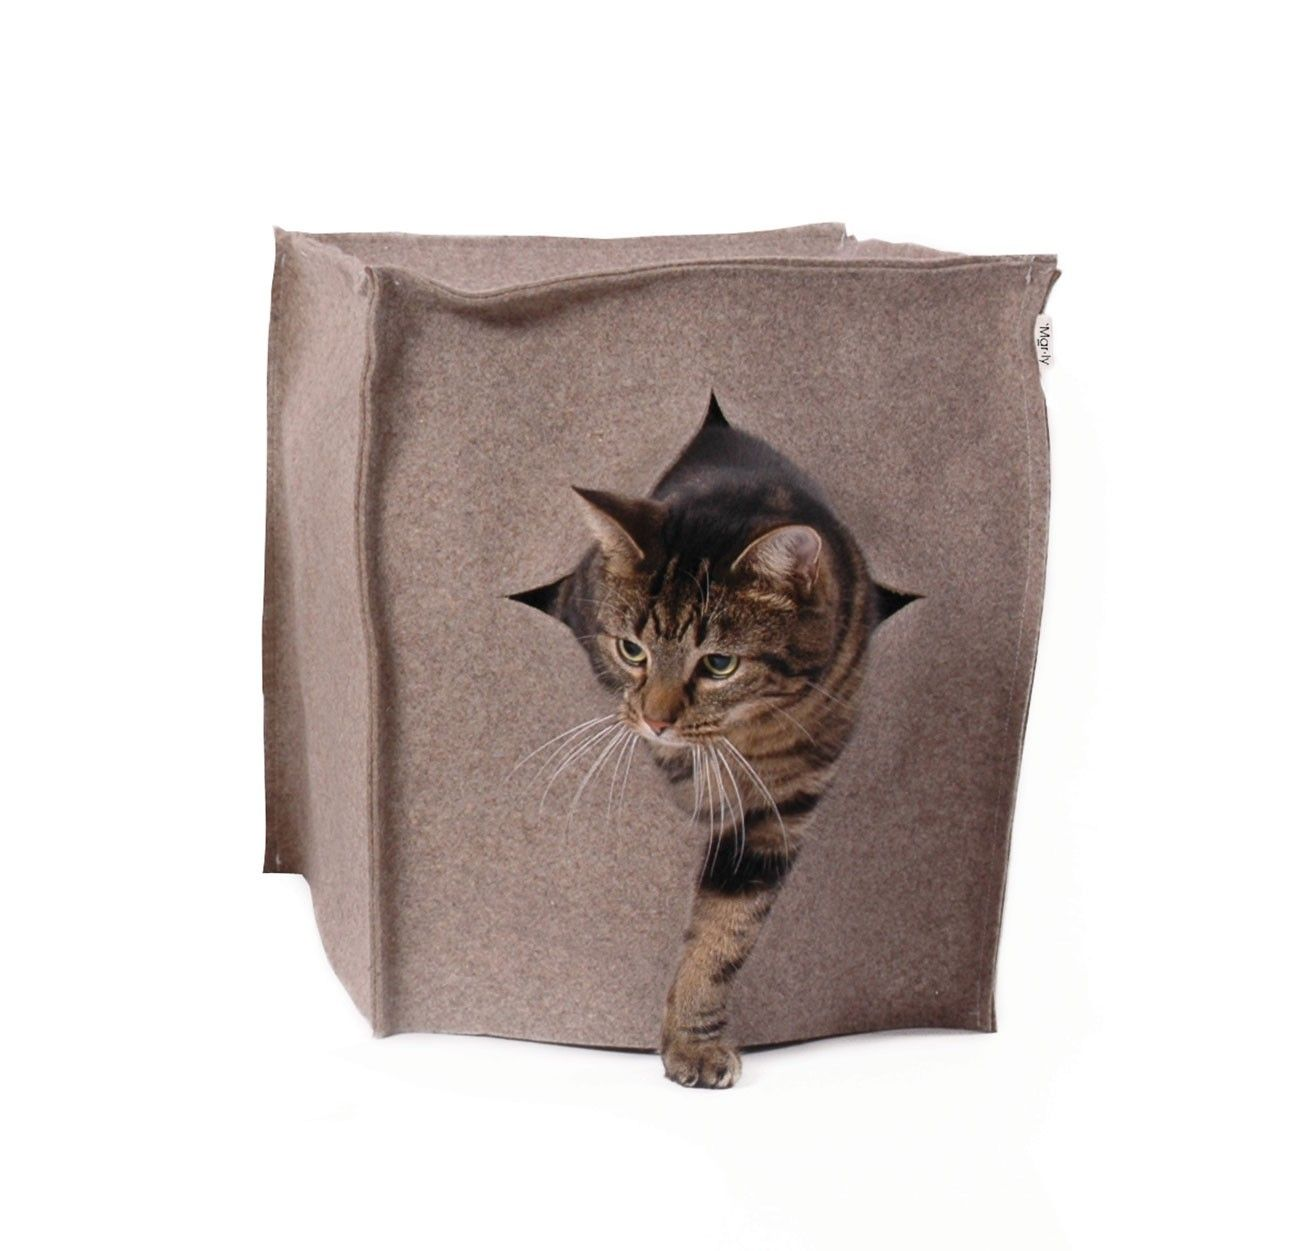 Cat's in Style Designer dog collars, Cats, Litter box covers